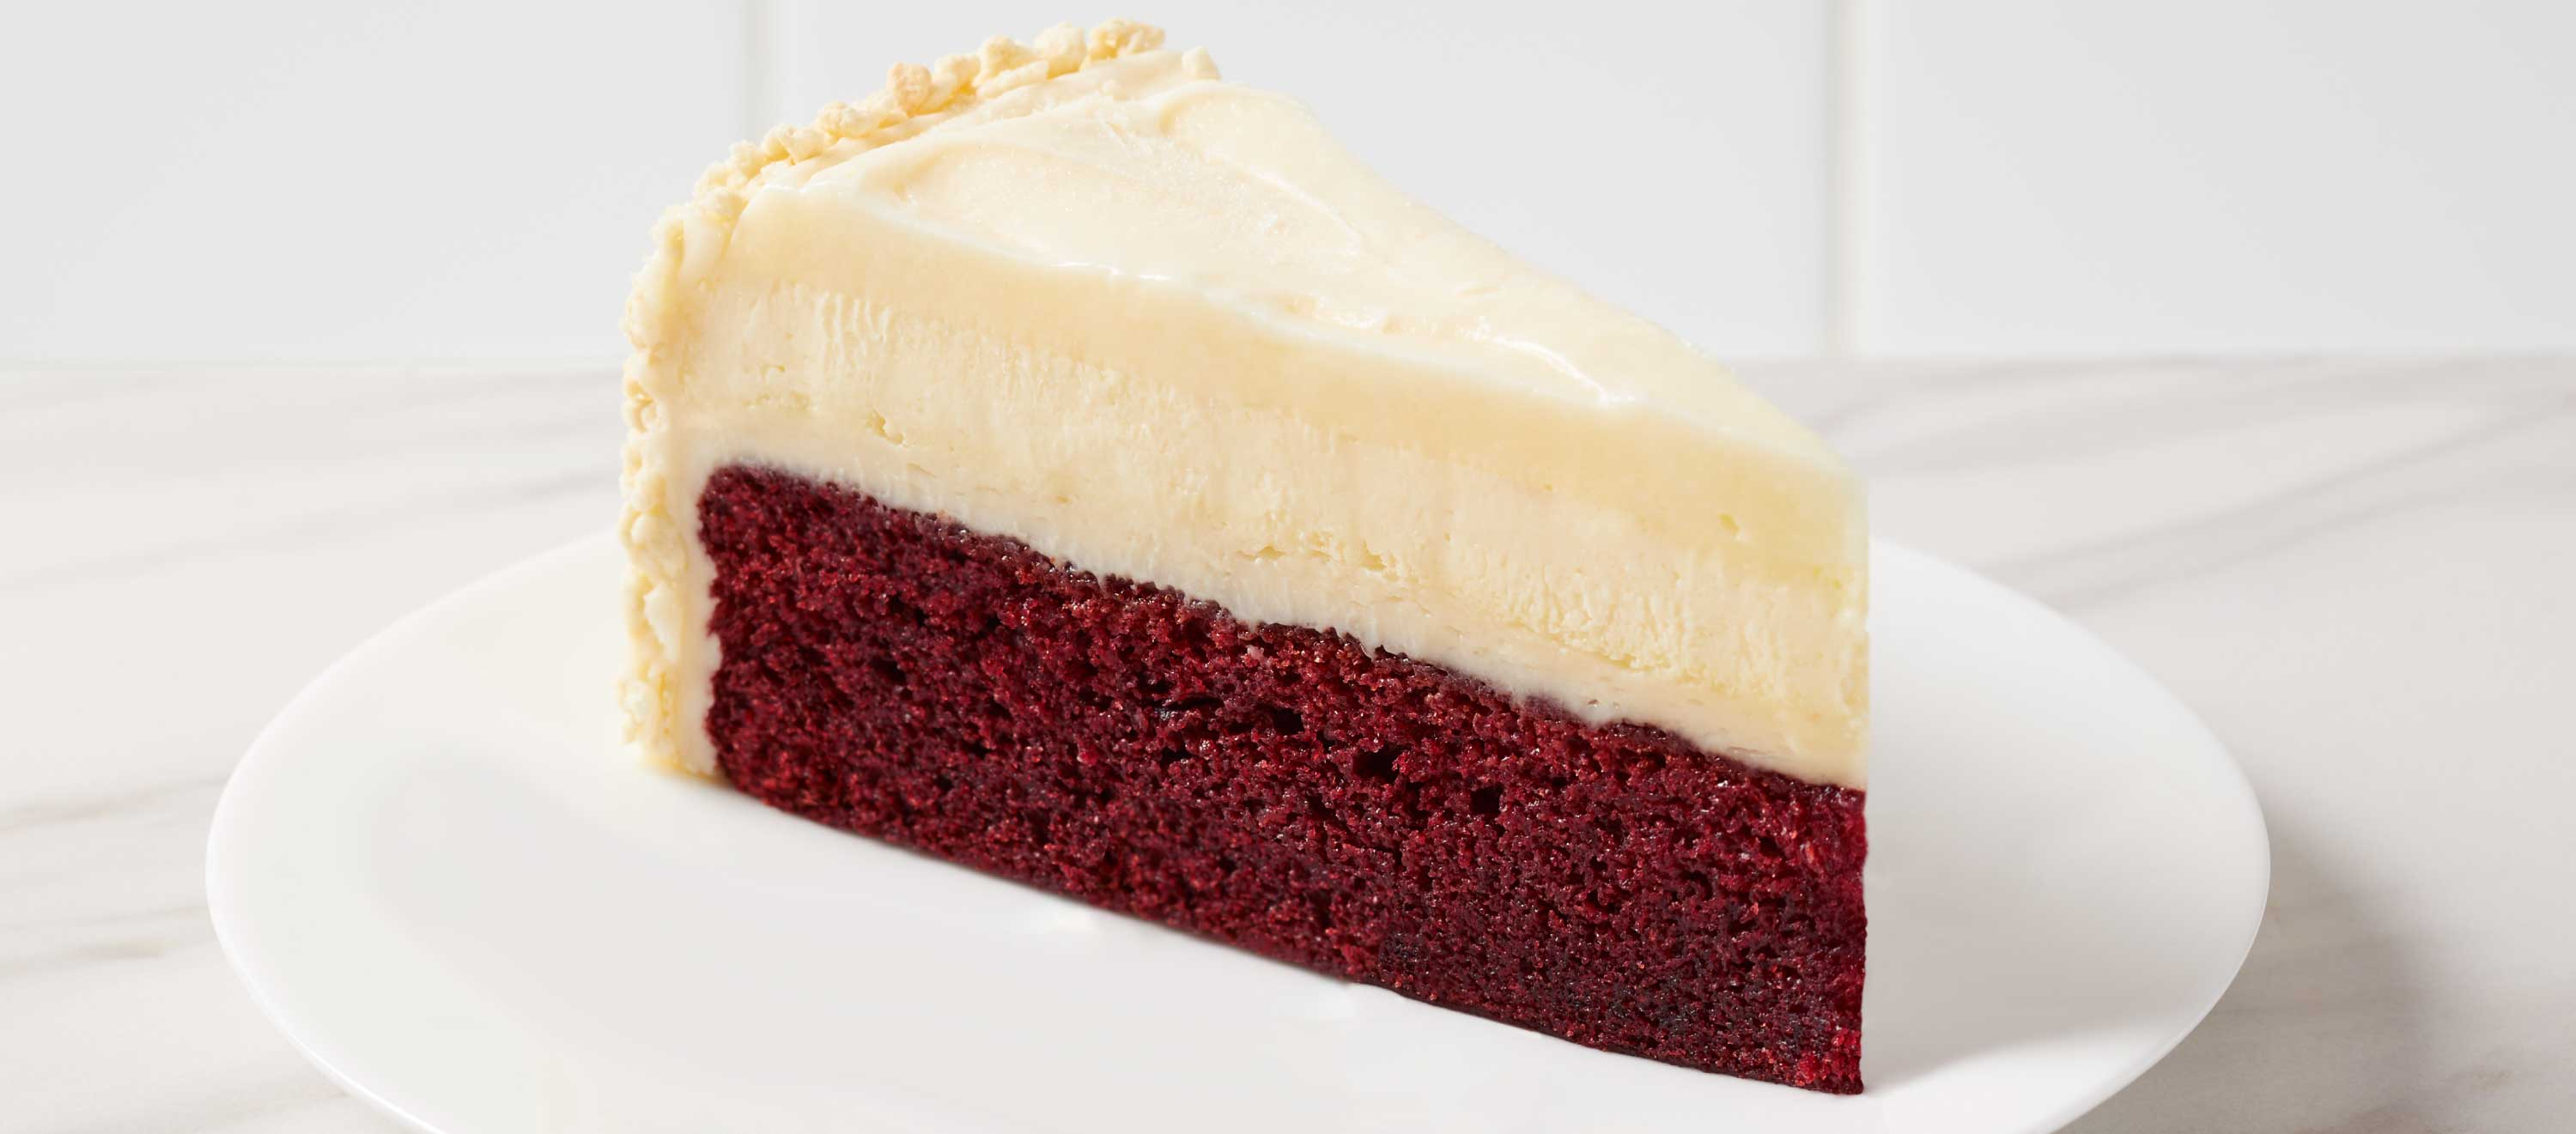 Come try this incredibly delicious Red Velvet Cake Cheesecake from The Cheesecake Factory Bakery.®